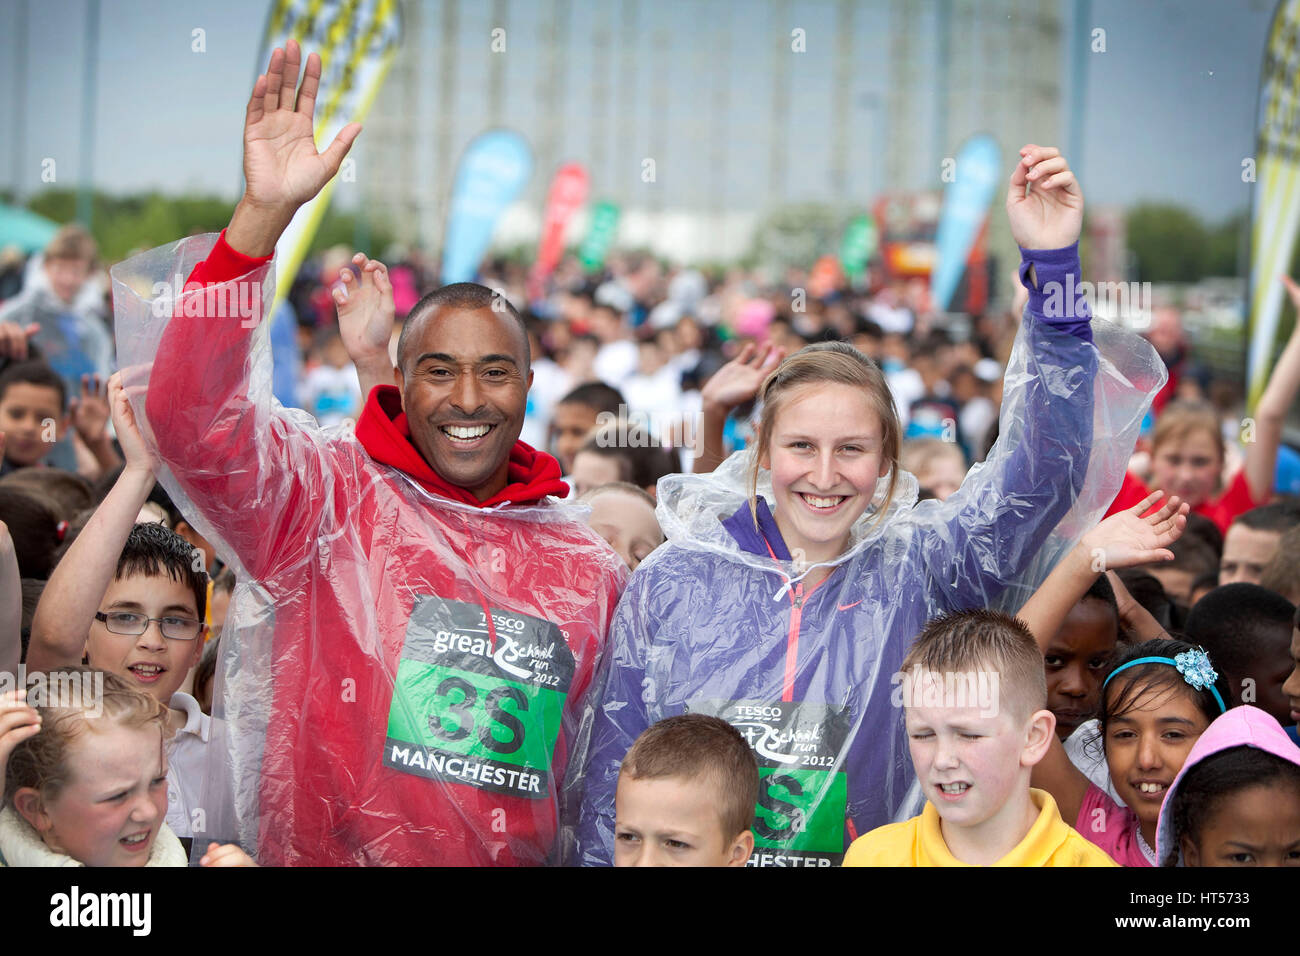 Colin Jackson and Olympic athlete Holly Bleasedale (now Holly Bradshaw)  start the Tesco Great School Run at Sportcity - Stock Image